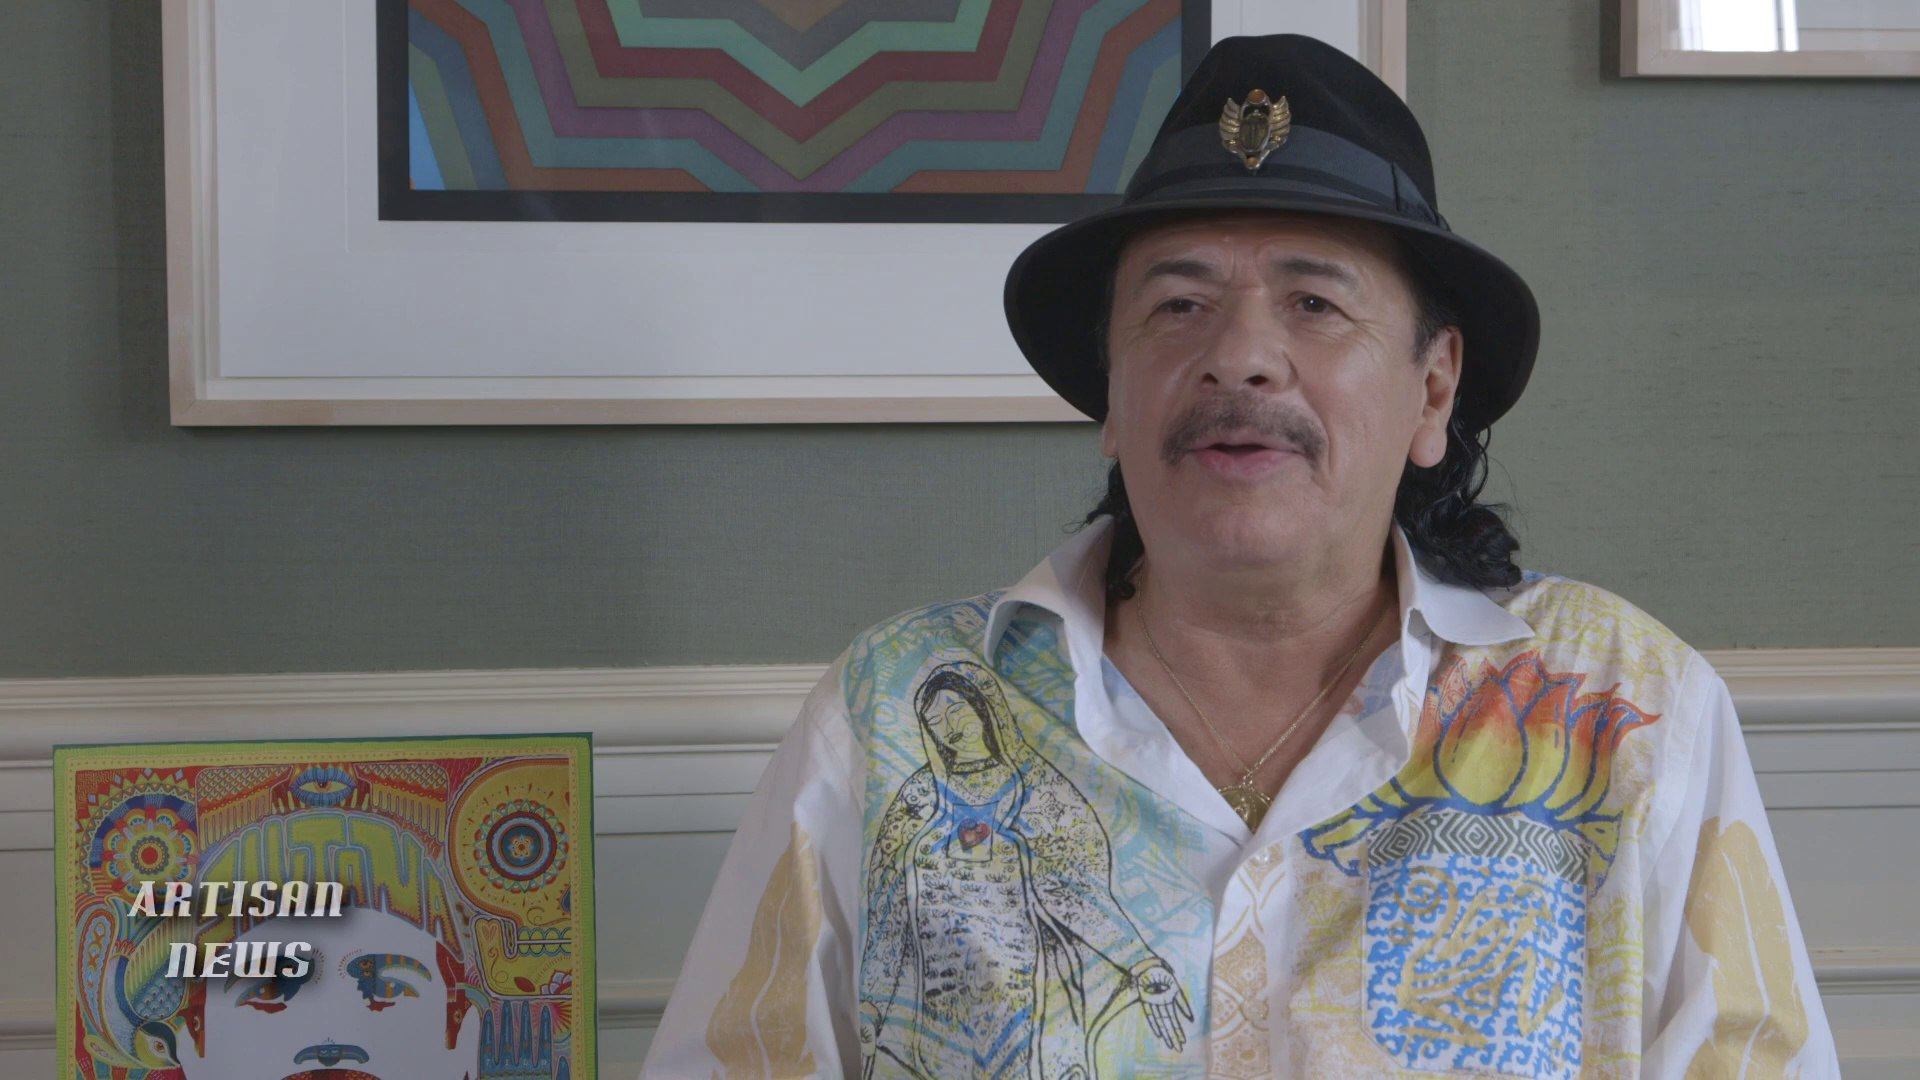 WOODSTOCK 45TH ANNIVERSARY, CARLOS SANTANA ASKED IF LESSONS LOST